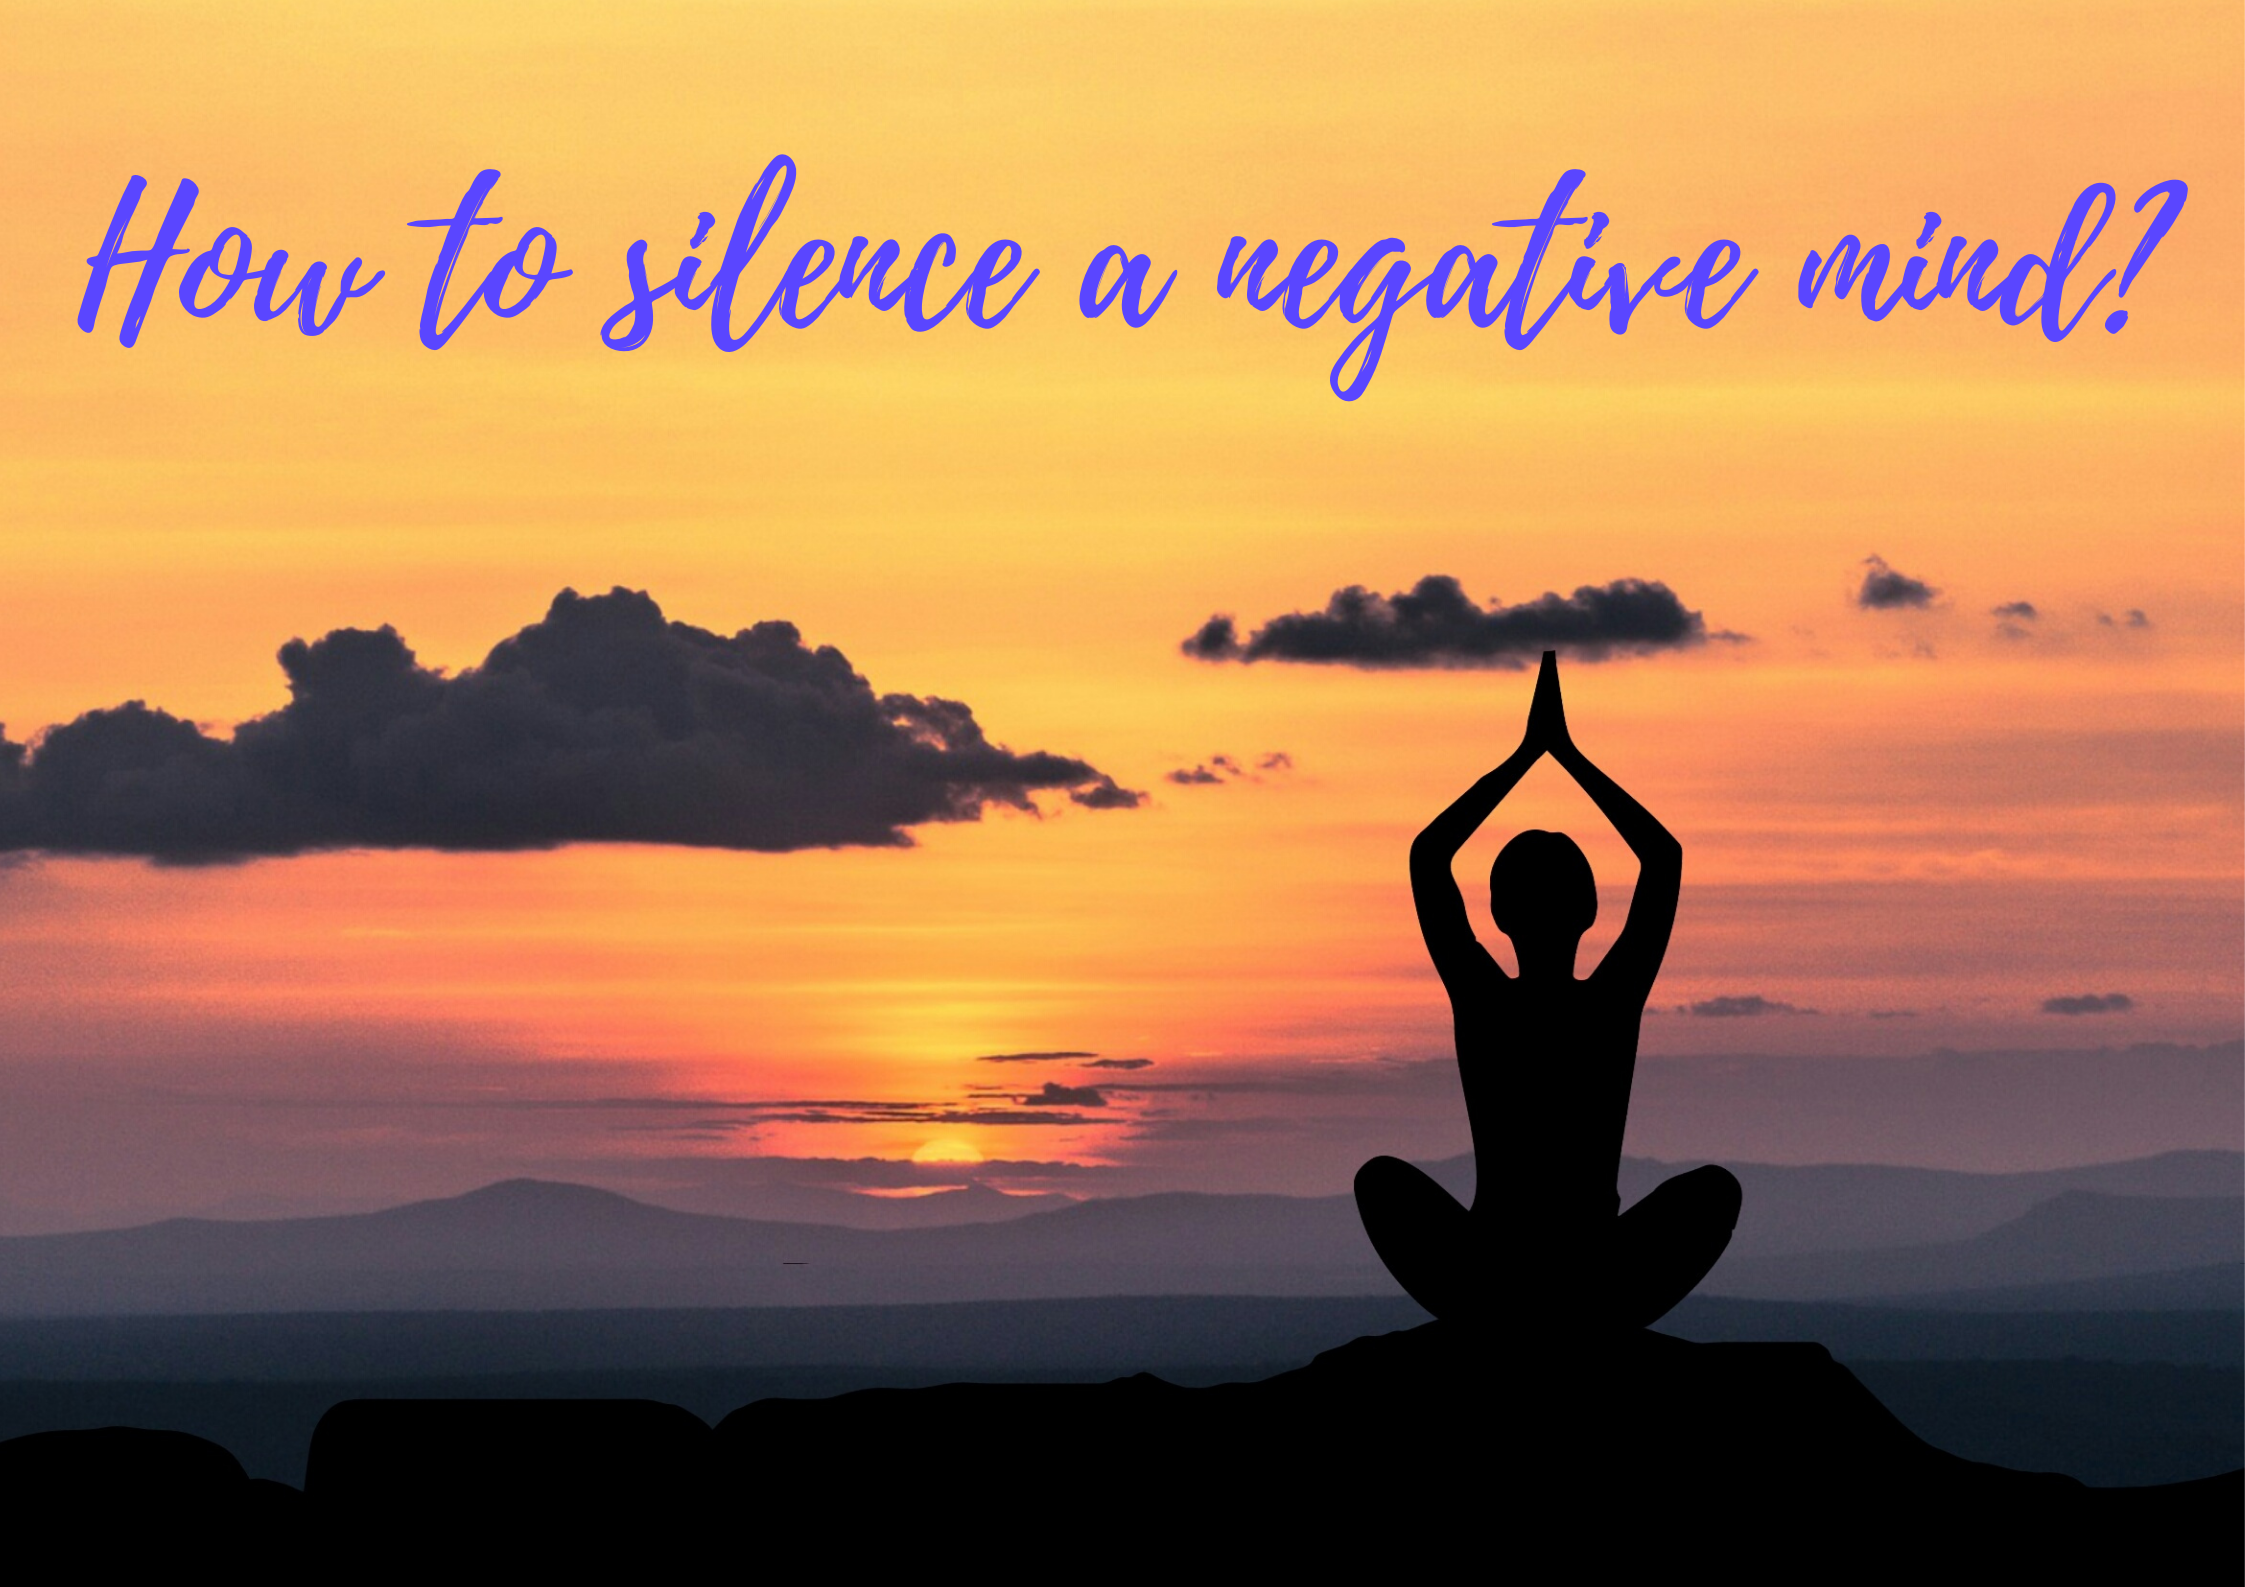 How To Silence A Negative Mind?